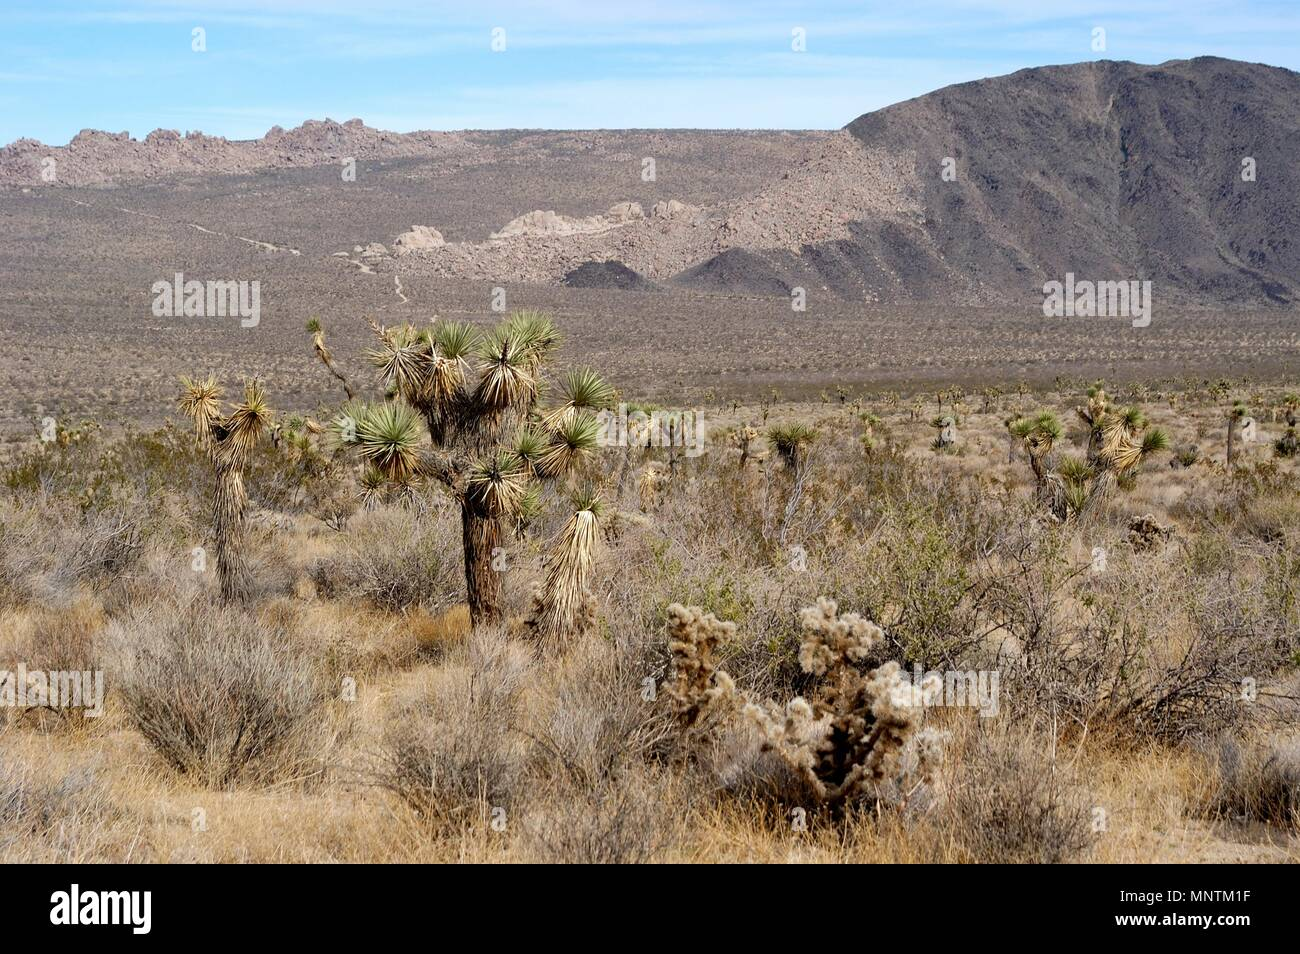 Joshua trees, Yucca brevifolia, Yucca palm,  Monzogranite and Pinto Gneiss, across Pleasant Valley,  Mojave Desert, Geology Tour Road, 031129_0433 - Stock Image